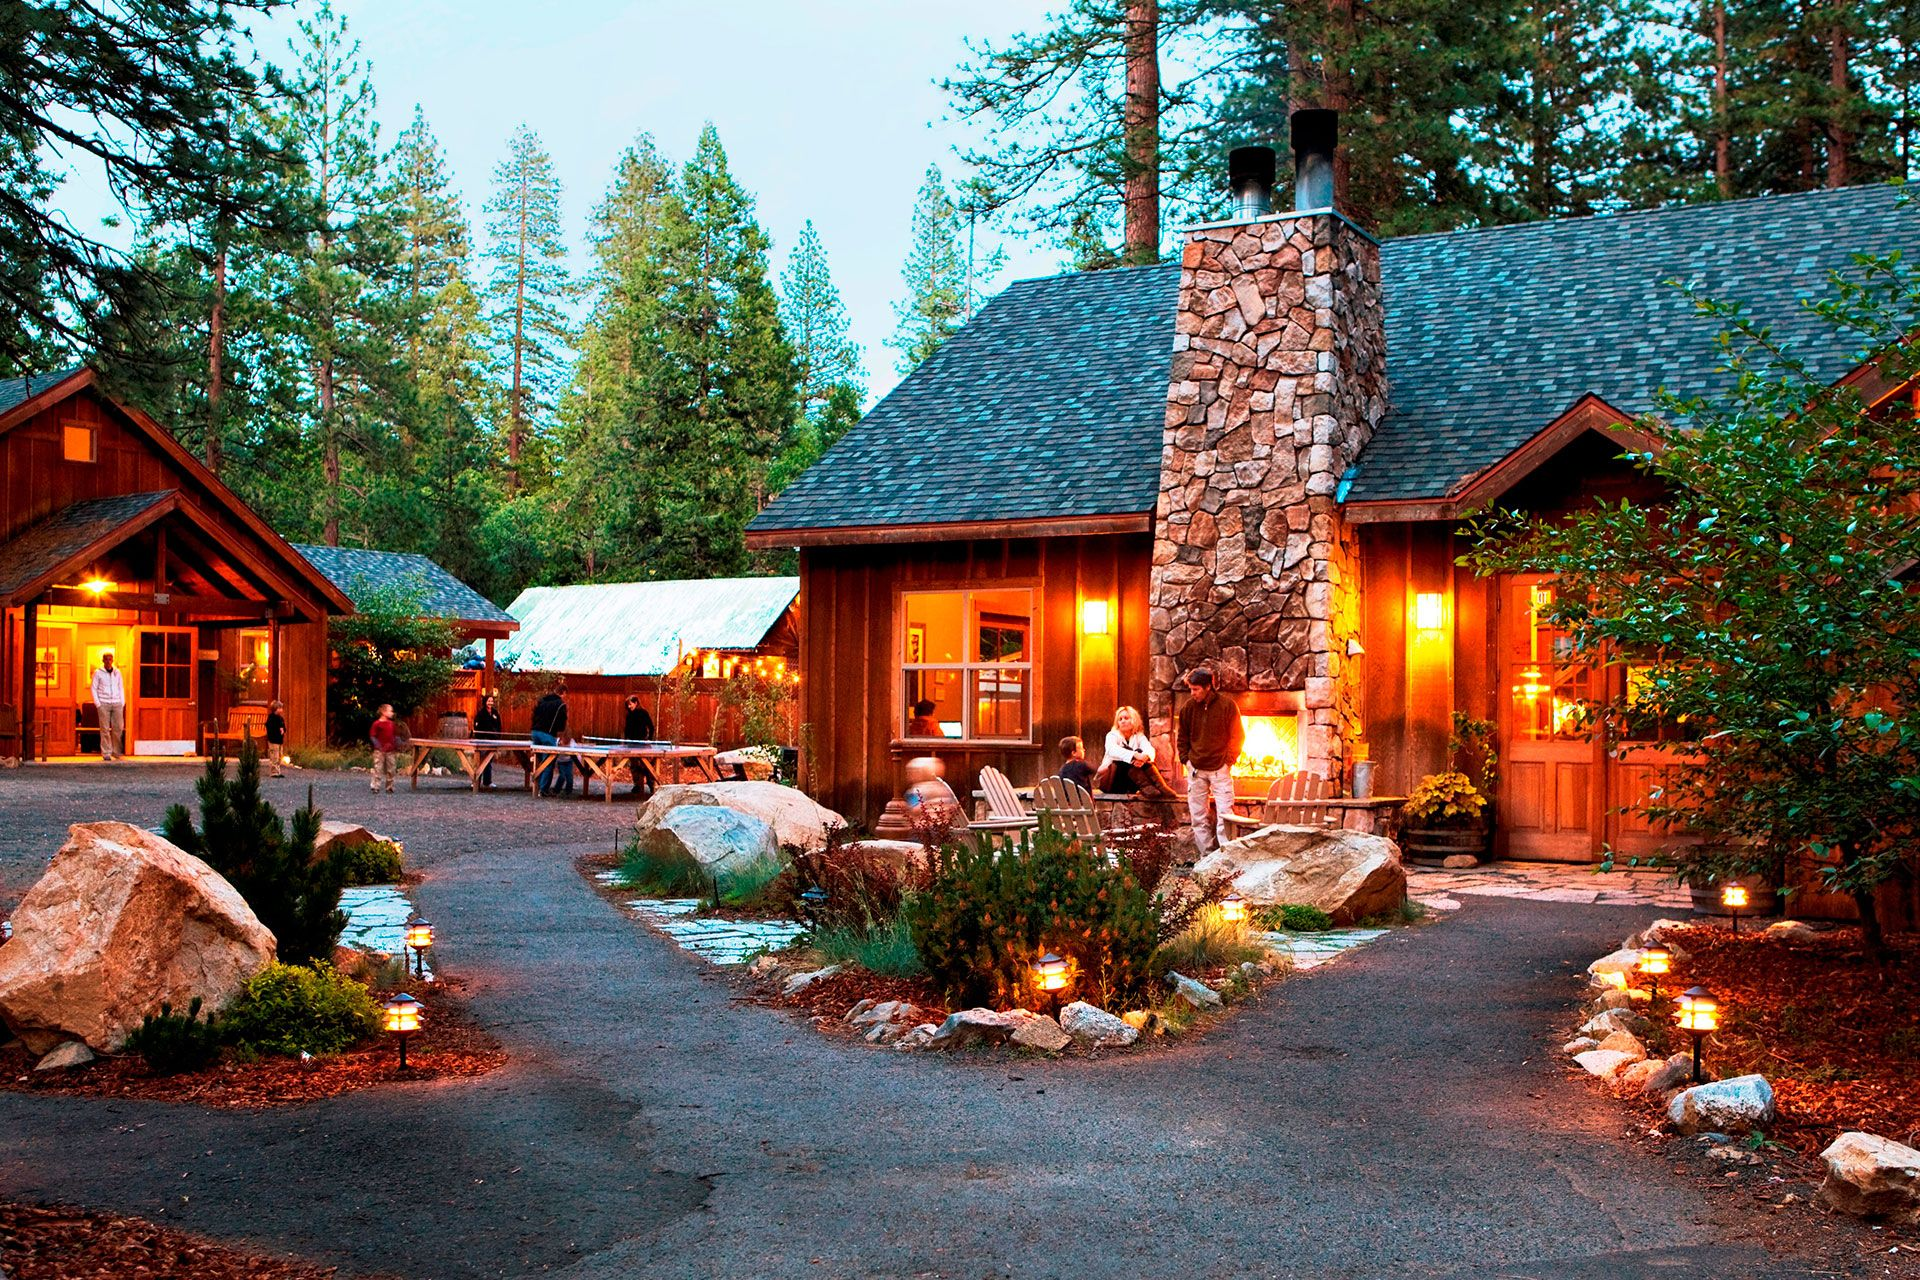 wild states national cabin park california img yosemite notesfromcamelidcountry into log cabins united the